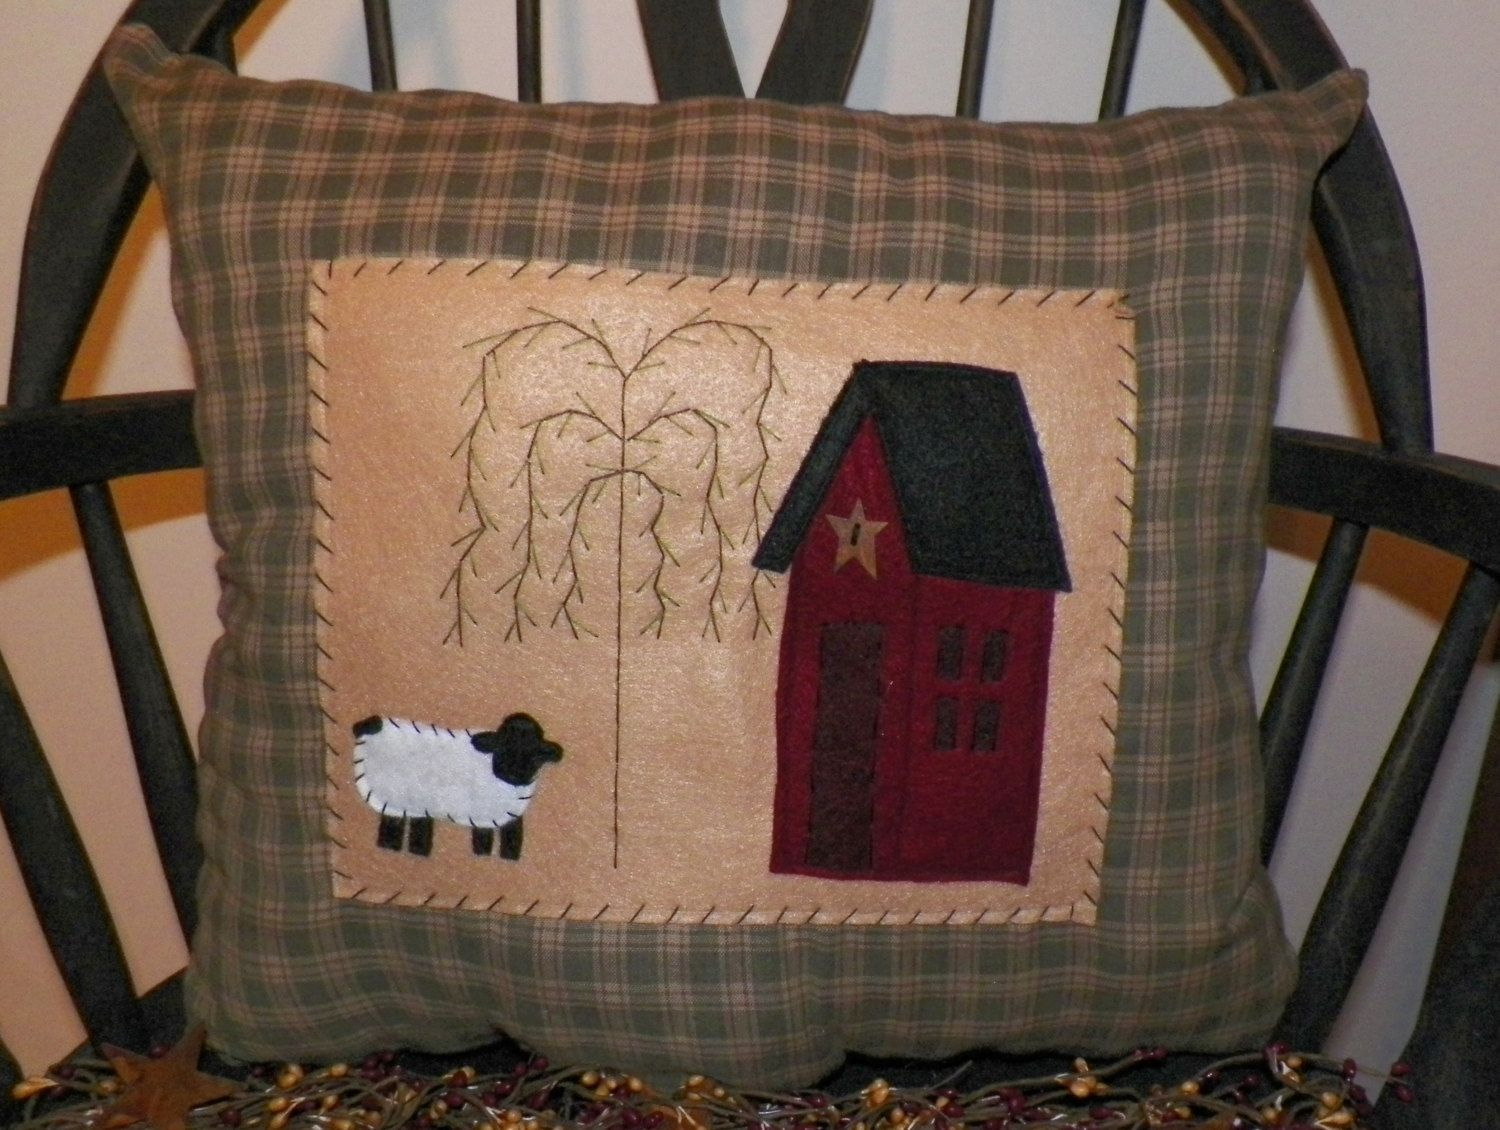 UNSTUFFED Primitive Pillow Cover Saltbox House Sheep Willow Country Rustic Decoration Decor Cushion Salt Box Green Decorative wvluckygirl - pinned by pin4etsy.com